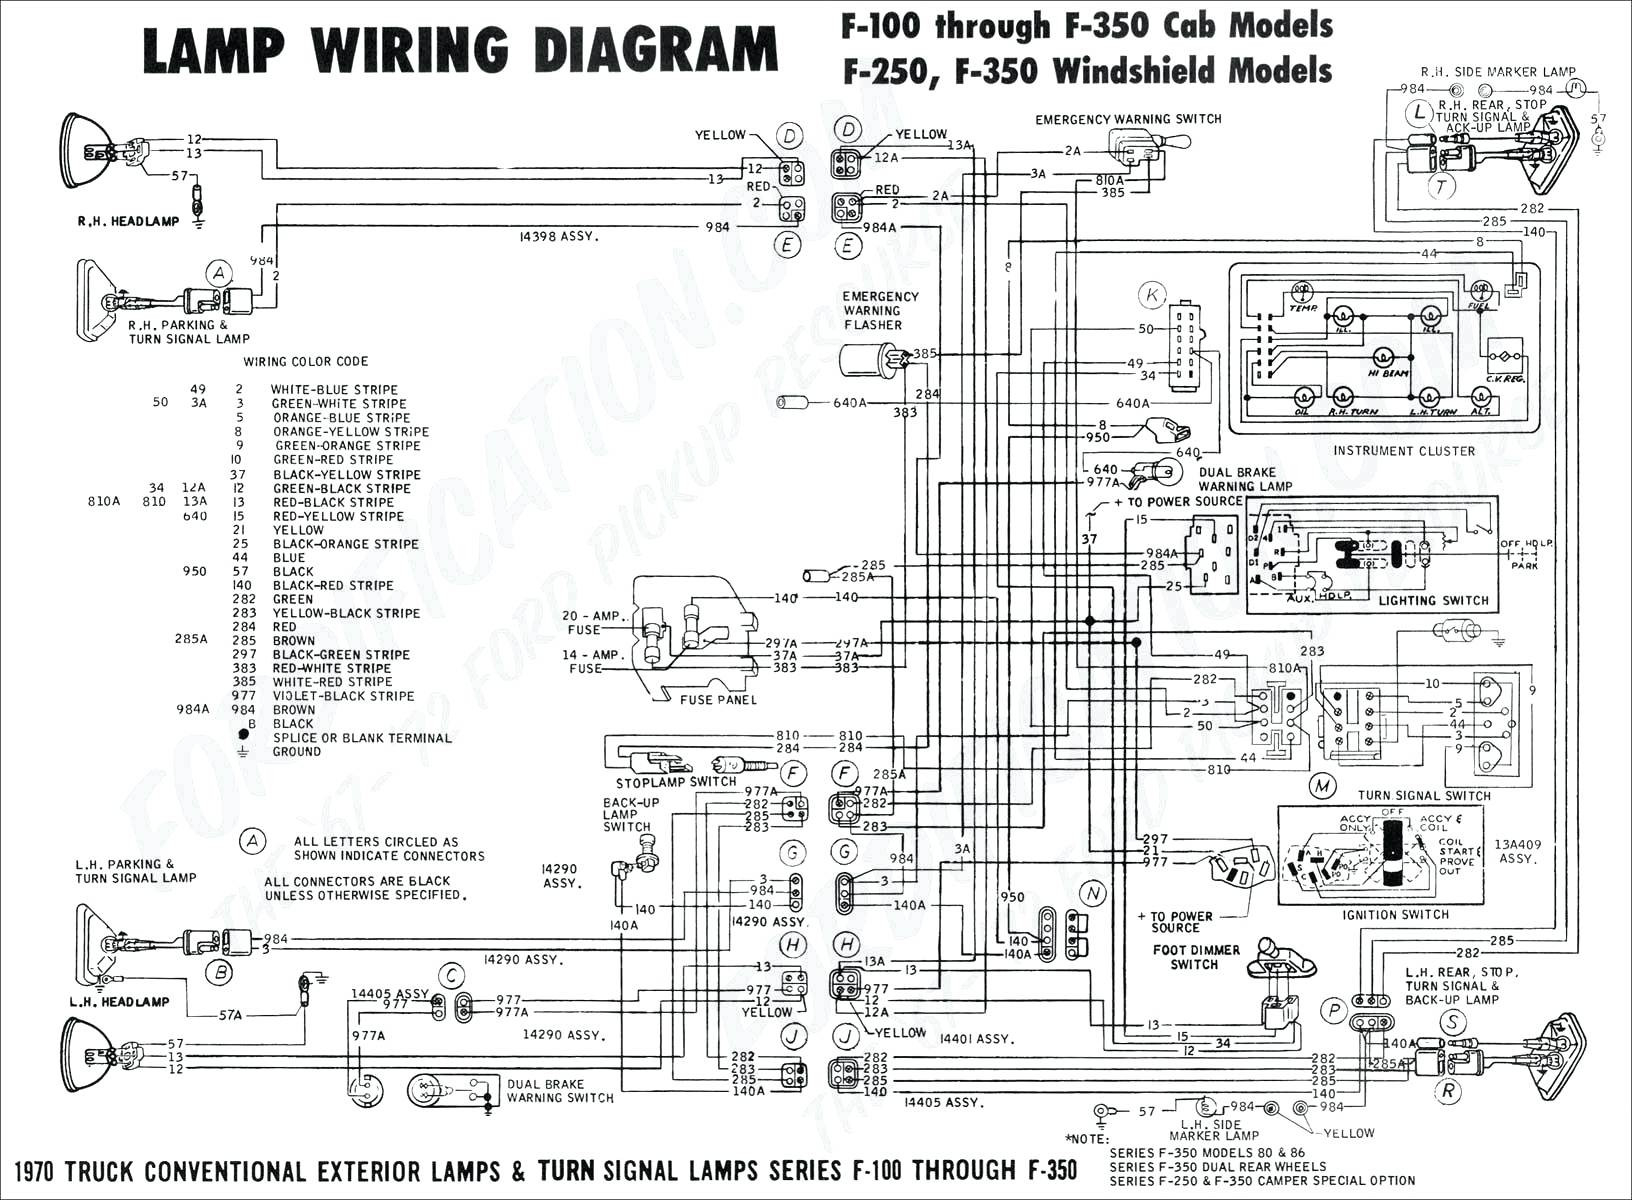 ford f250 wiring diagram for trailer lights Download-Wiring Diagram Trailer Lights Ireland Valid ford F250 Wiring Diagram for Trailer Lights Copy Pioneer Fh 2-f